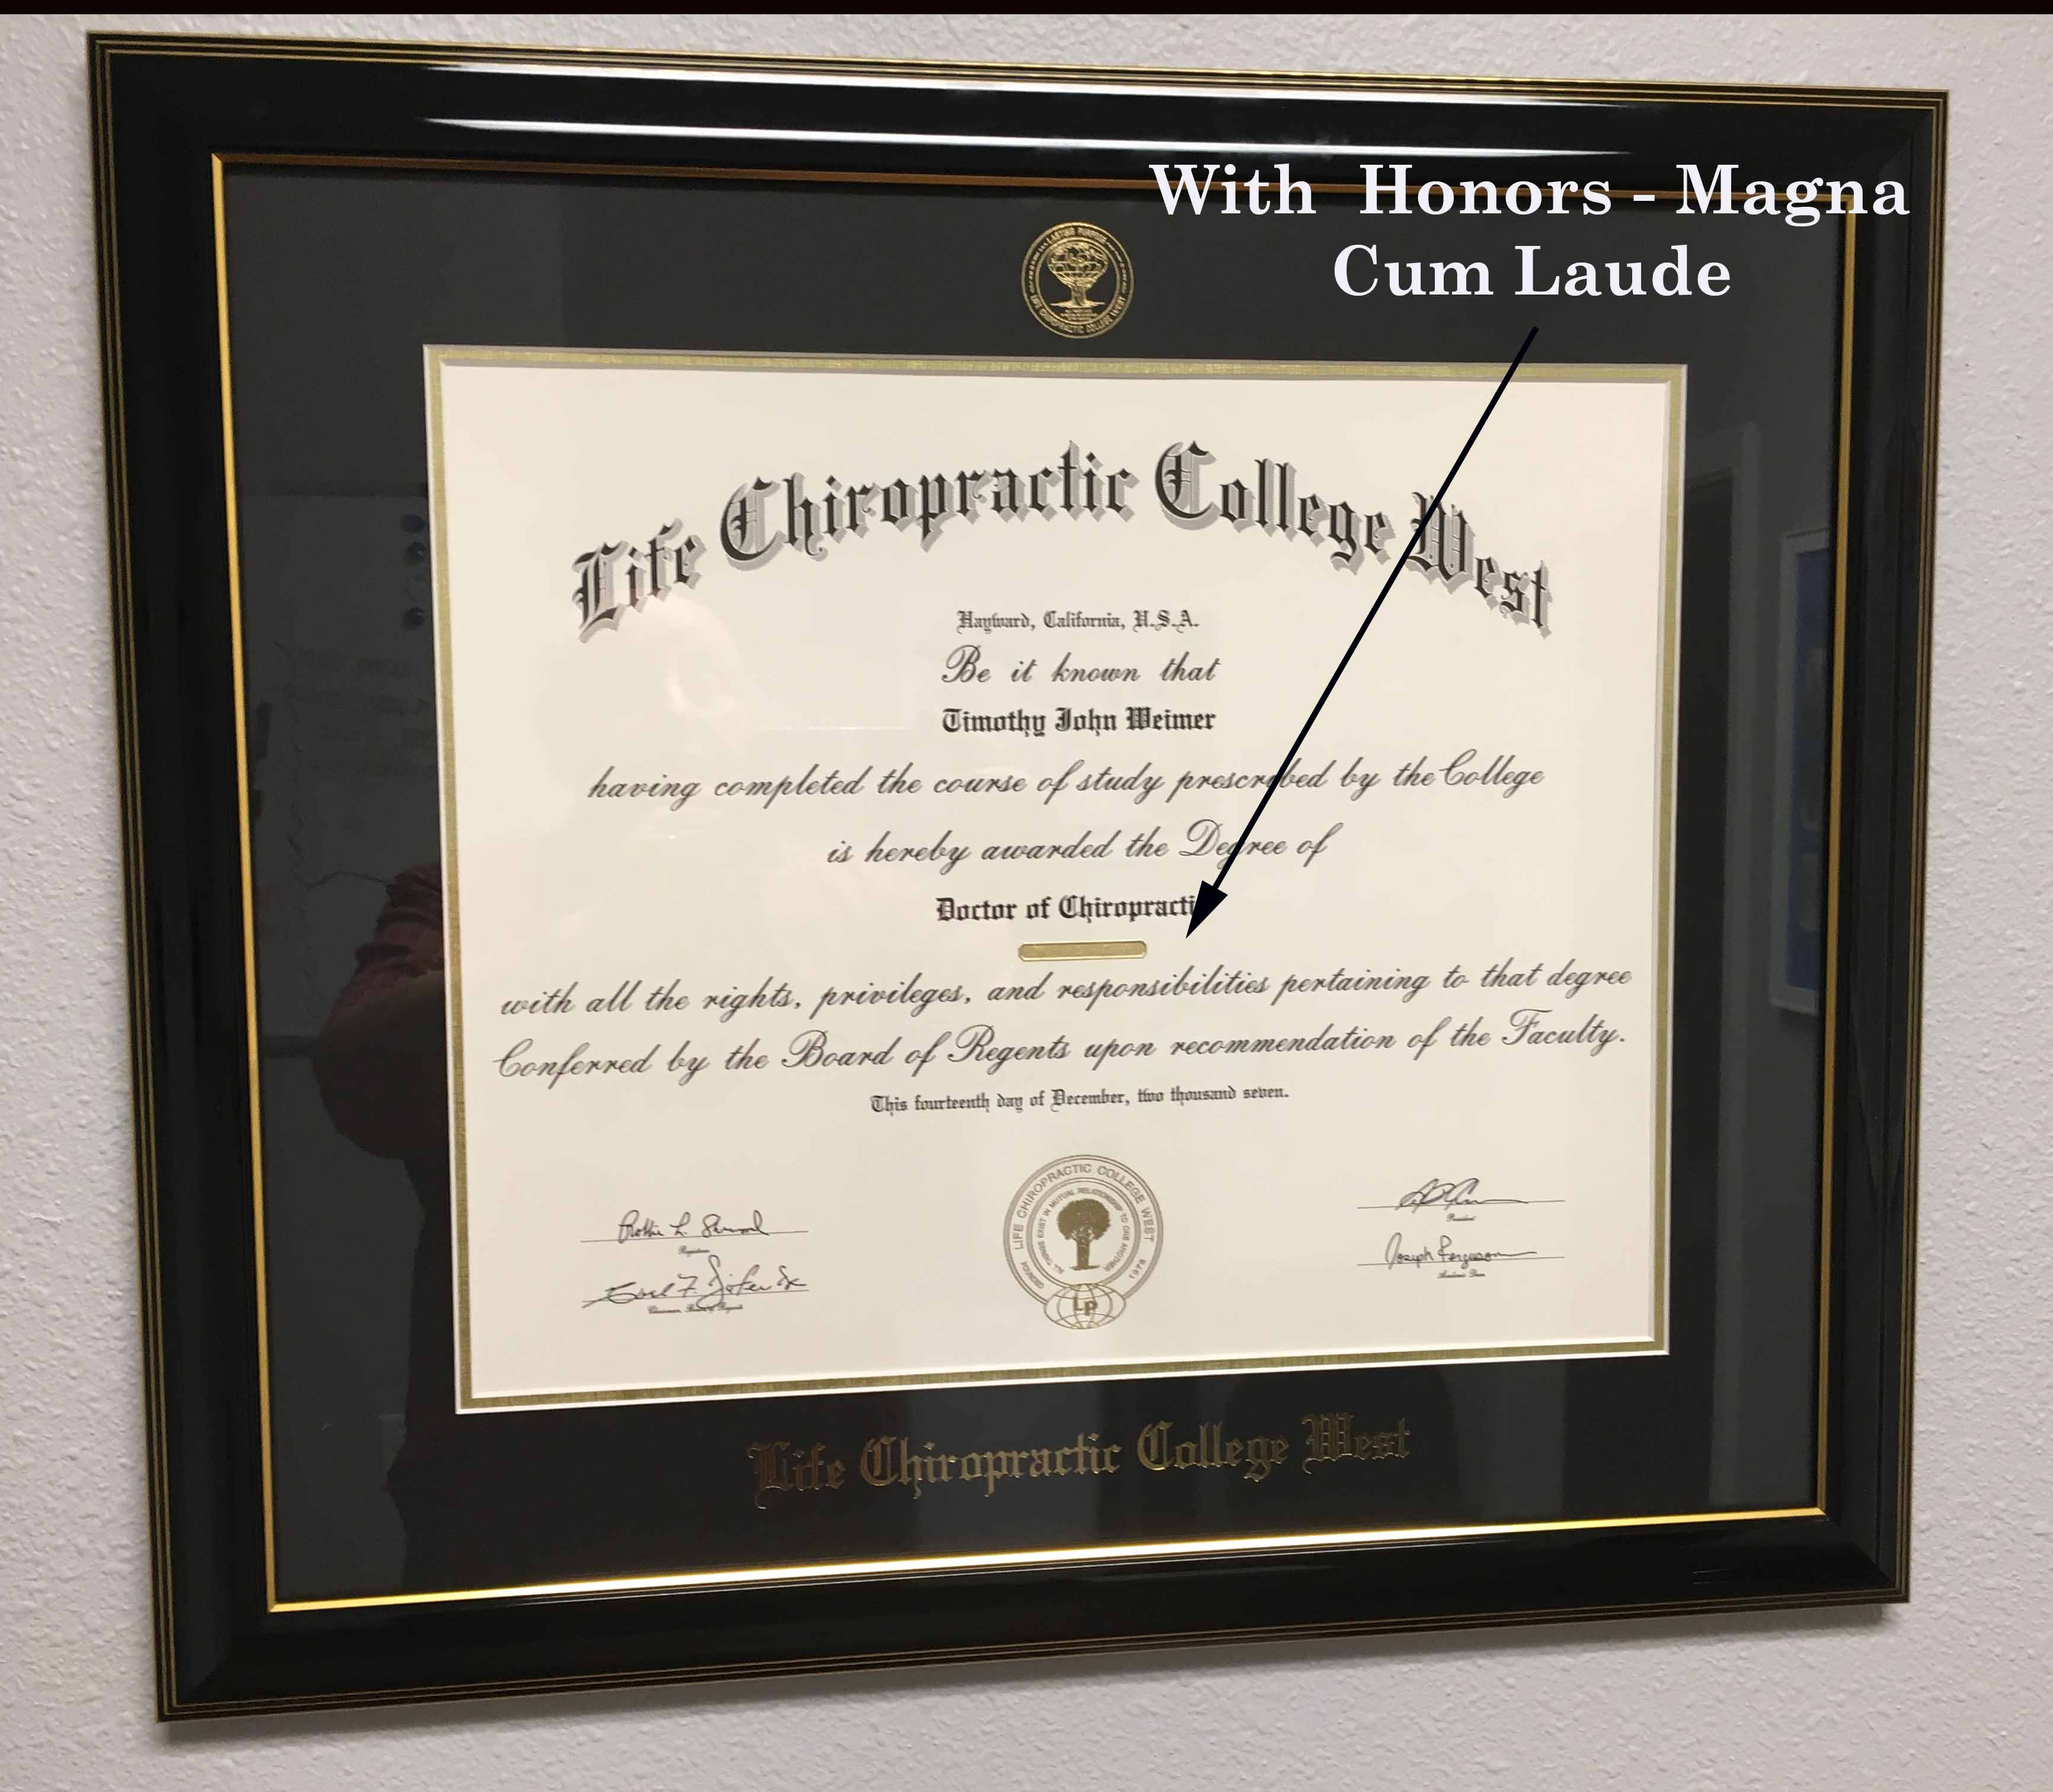 Life West Chiropractic College Diploma